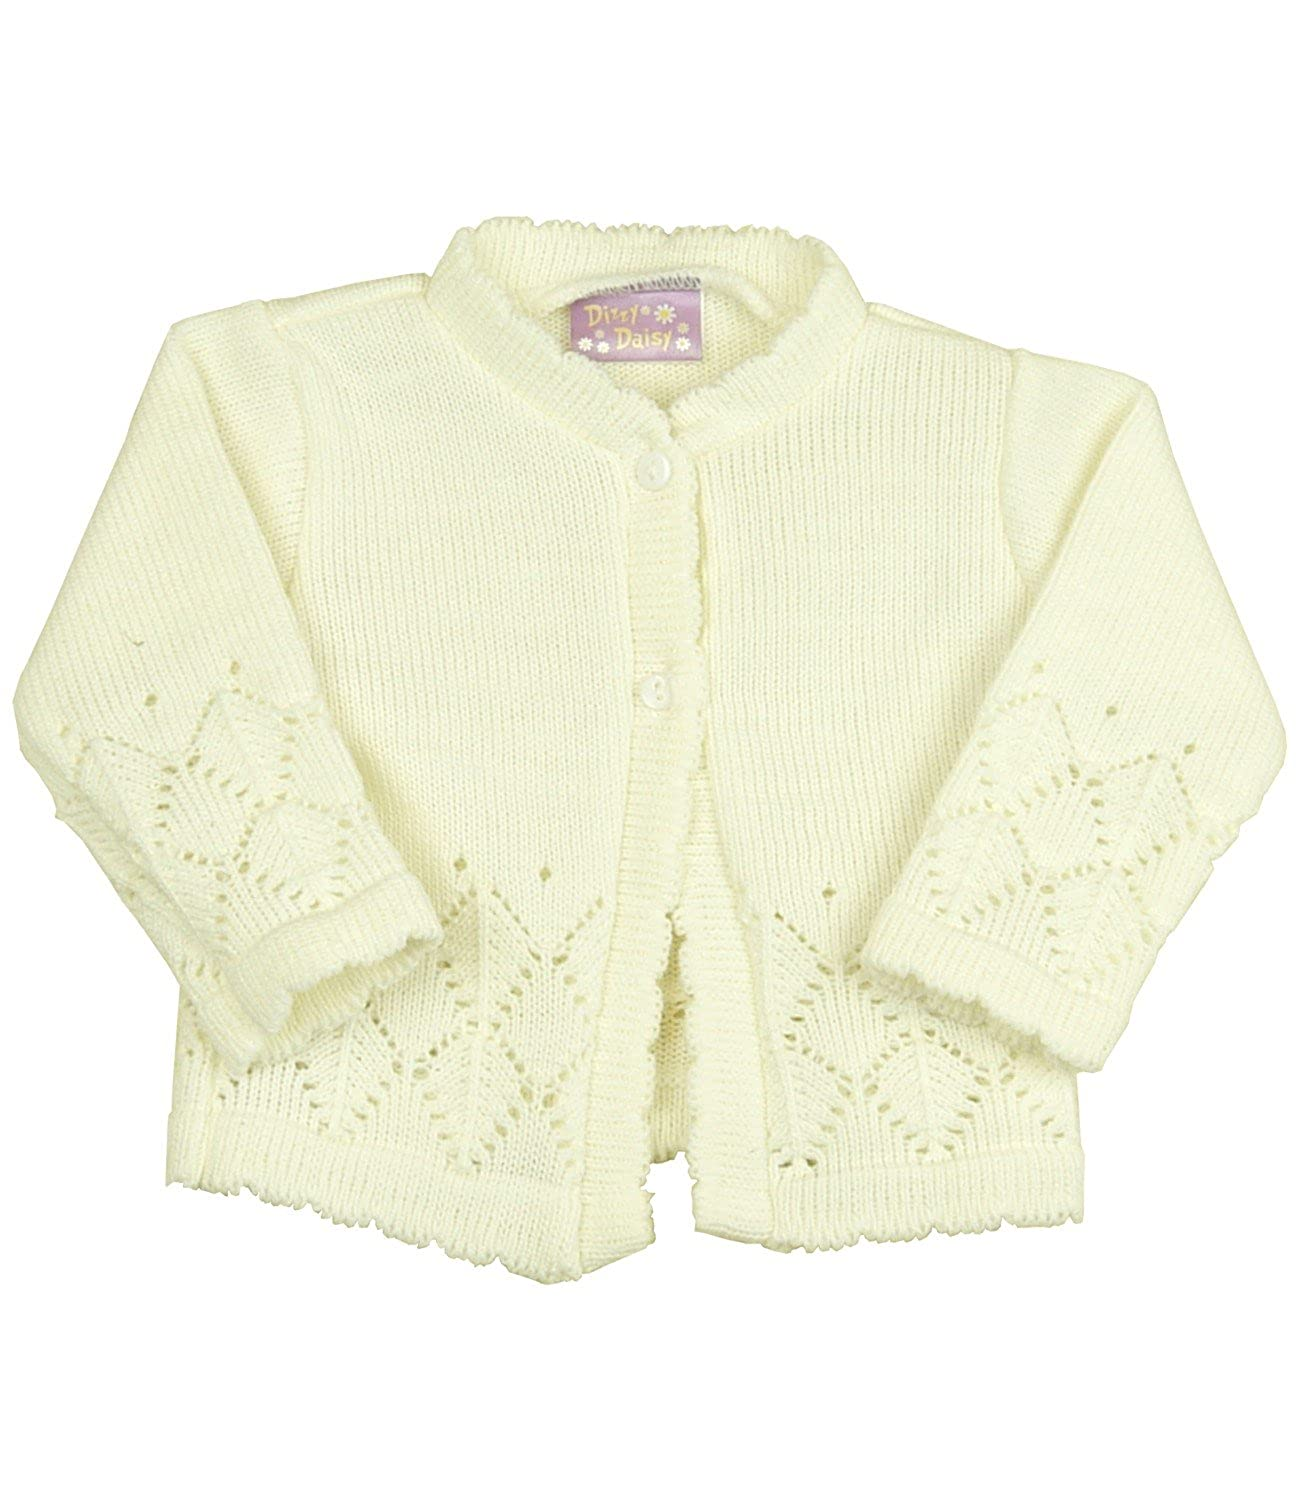 e6a624199f0e Amazon.com  BabyPrem Baby Girls Boys Cardigan Cream Pink Knitted ...